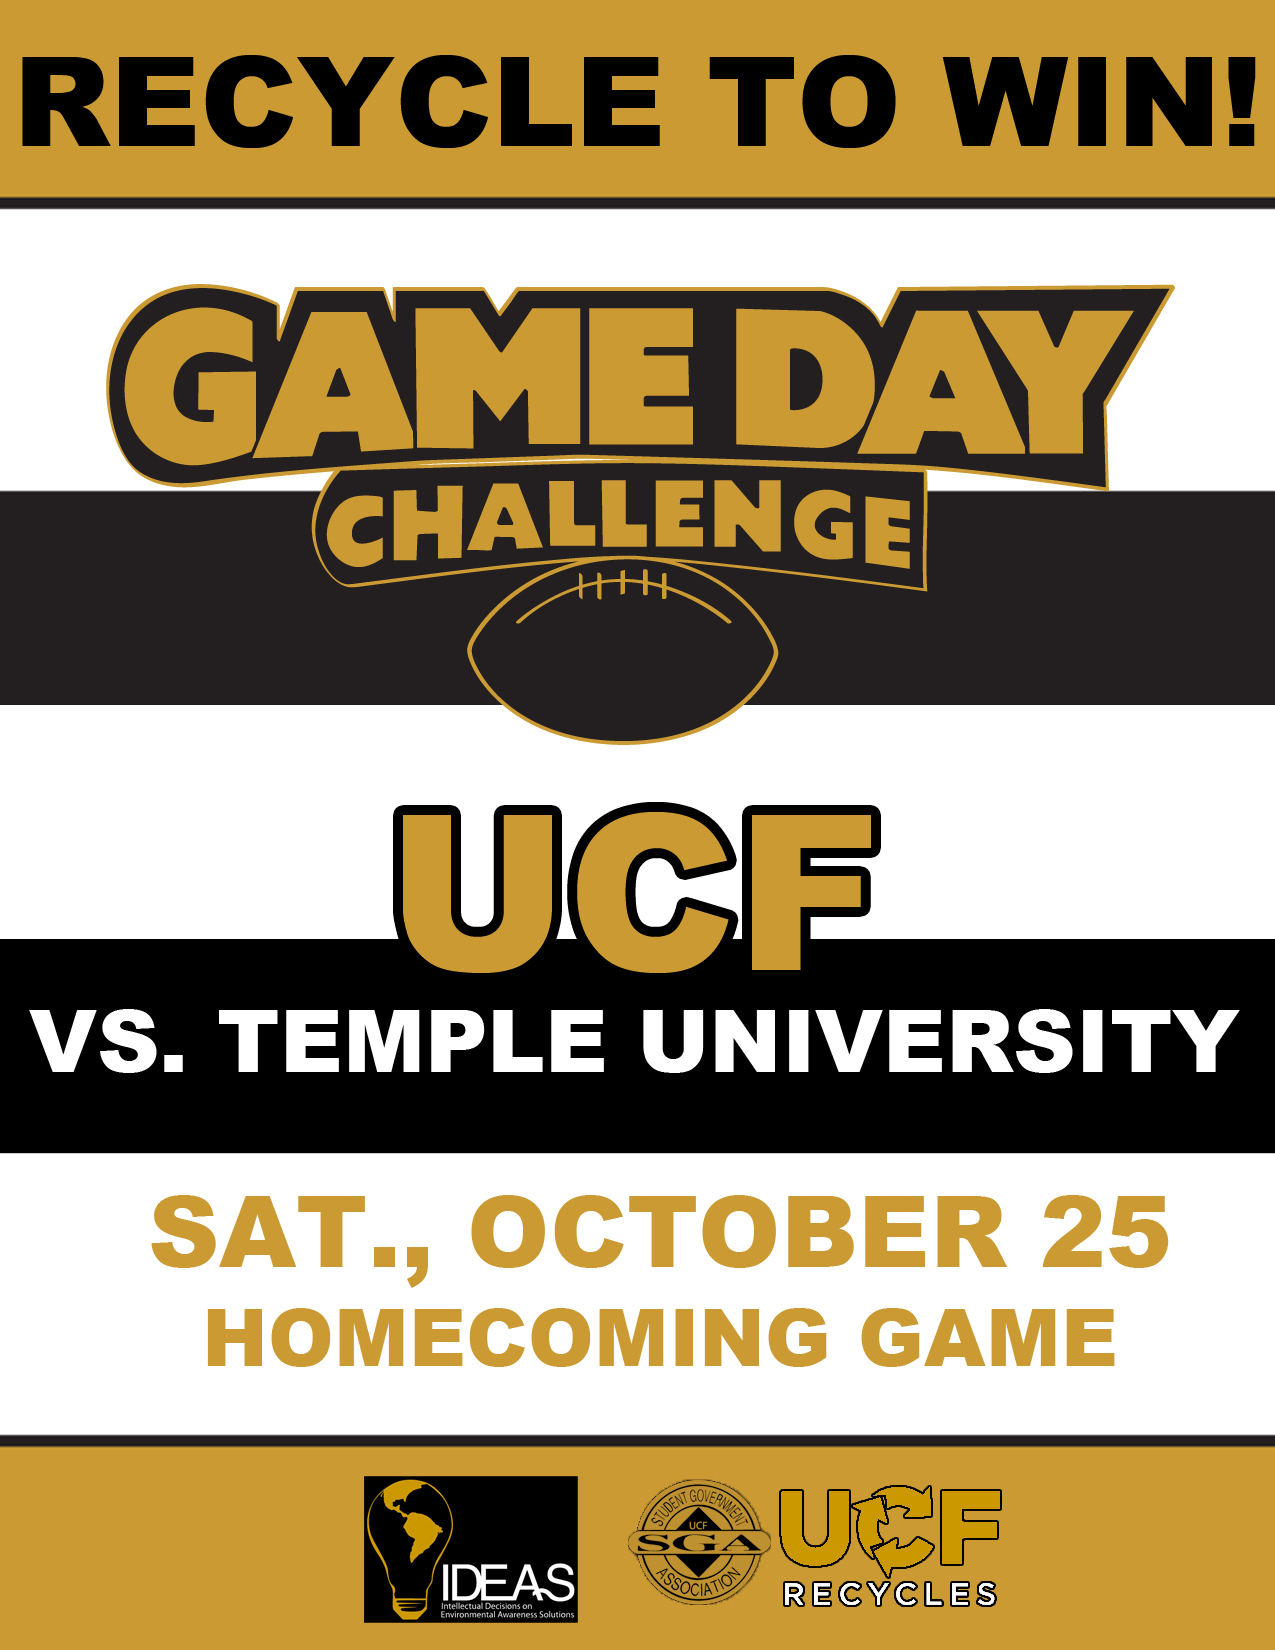 UCF Game Day Challenge 2014